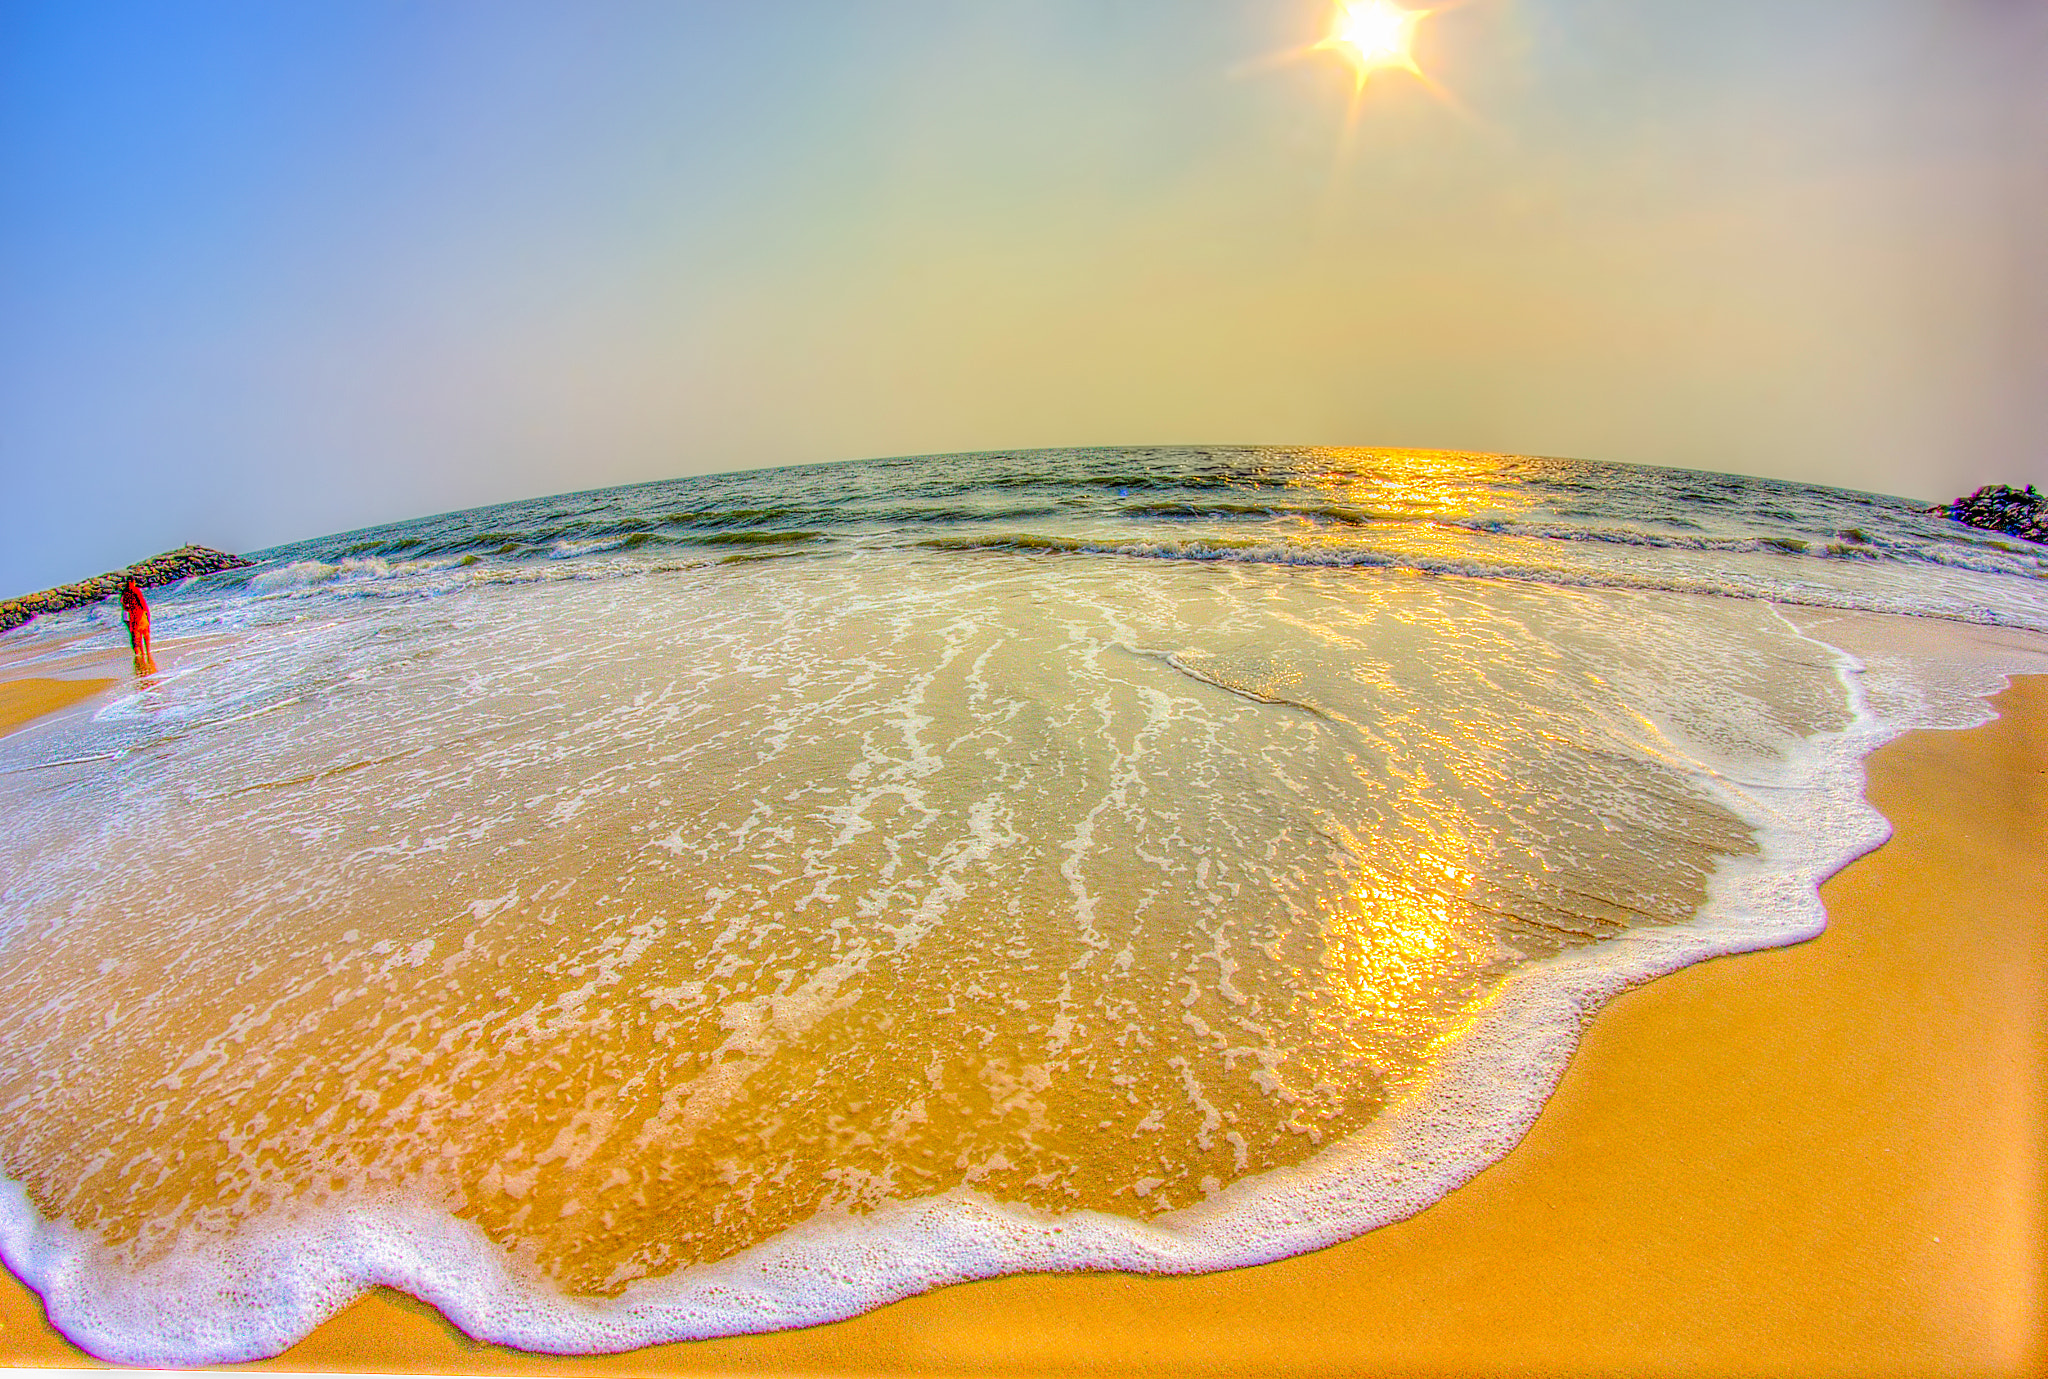 Photograph The Waves are calling! by Ershad Ashraf on 500px